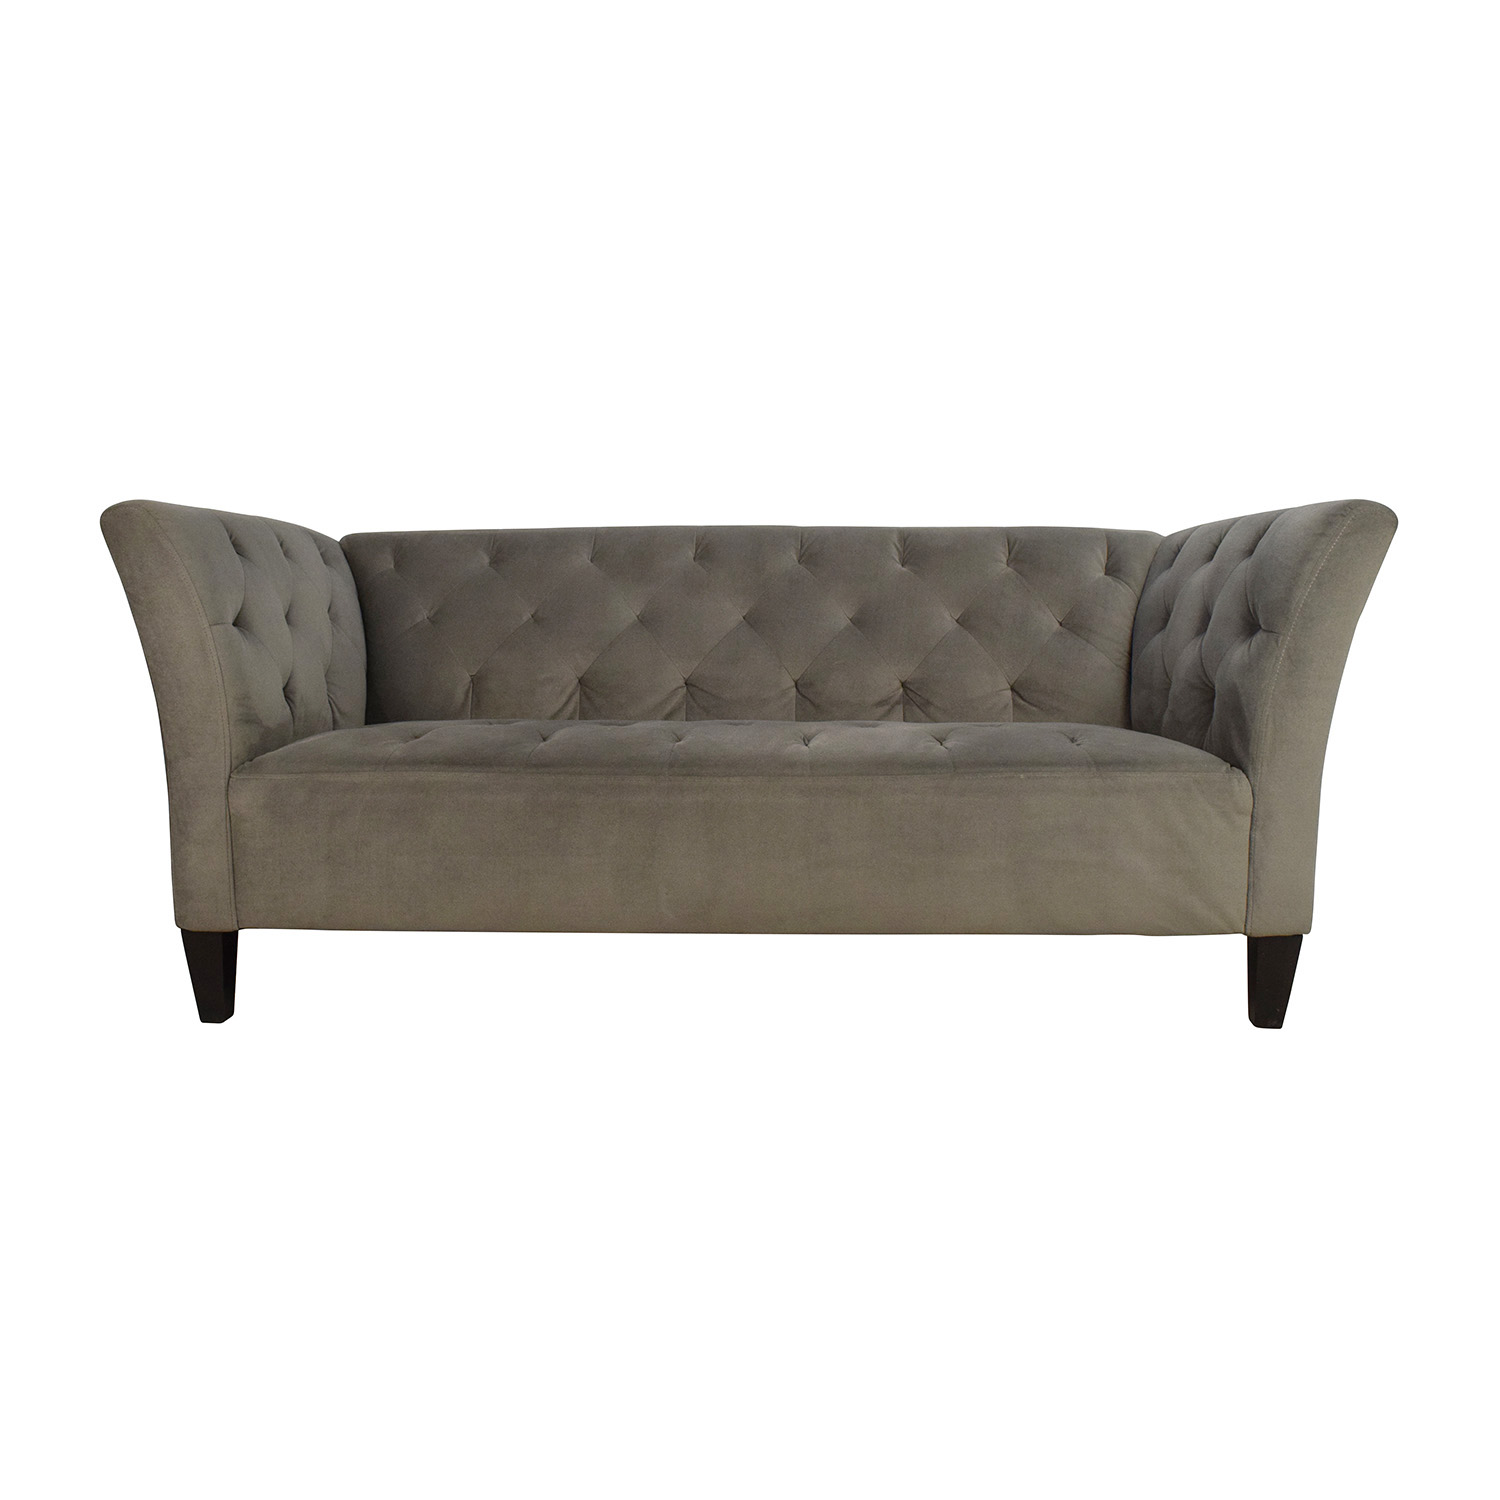 47% OFF Macy s Macy s Lizbeth Gray Button Tufted Sofa Sofas